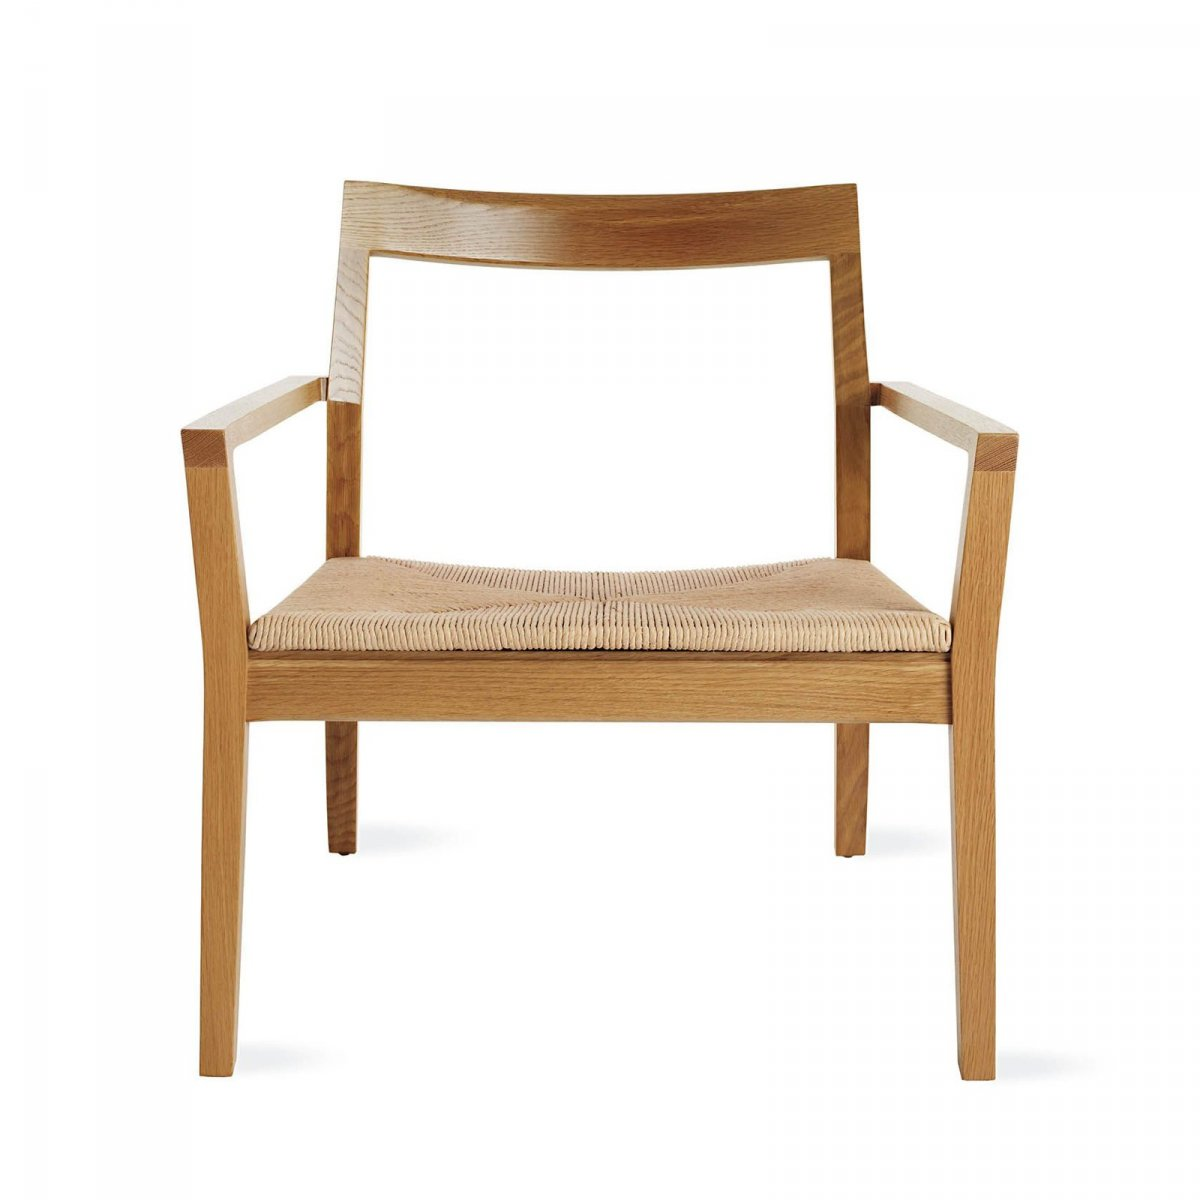 Krusin Lounge Arm Chair, natural oak, front view.